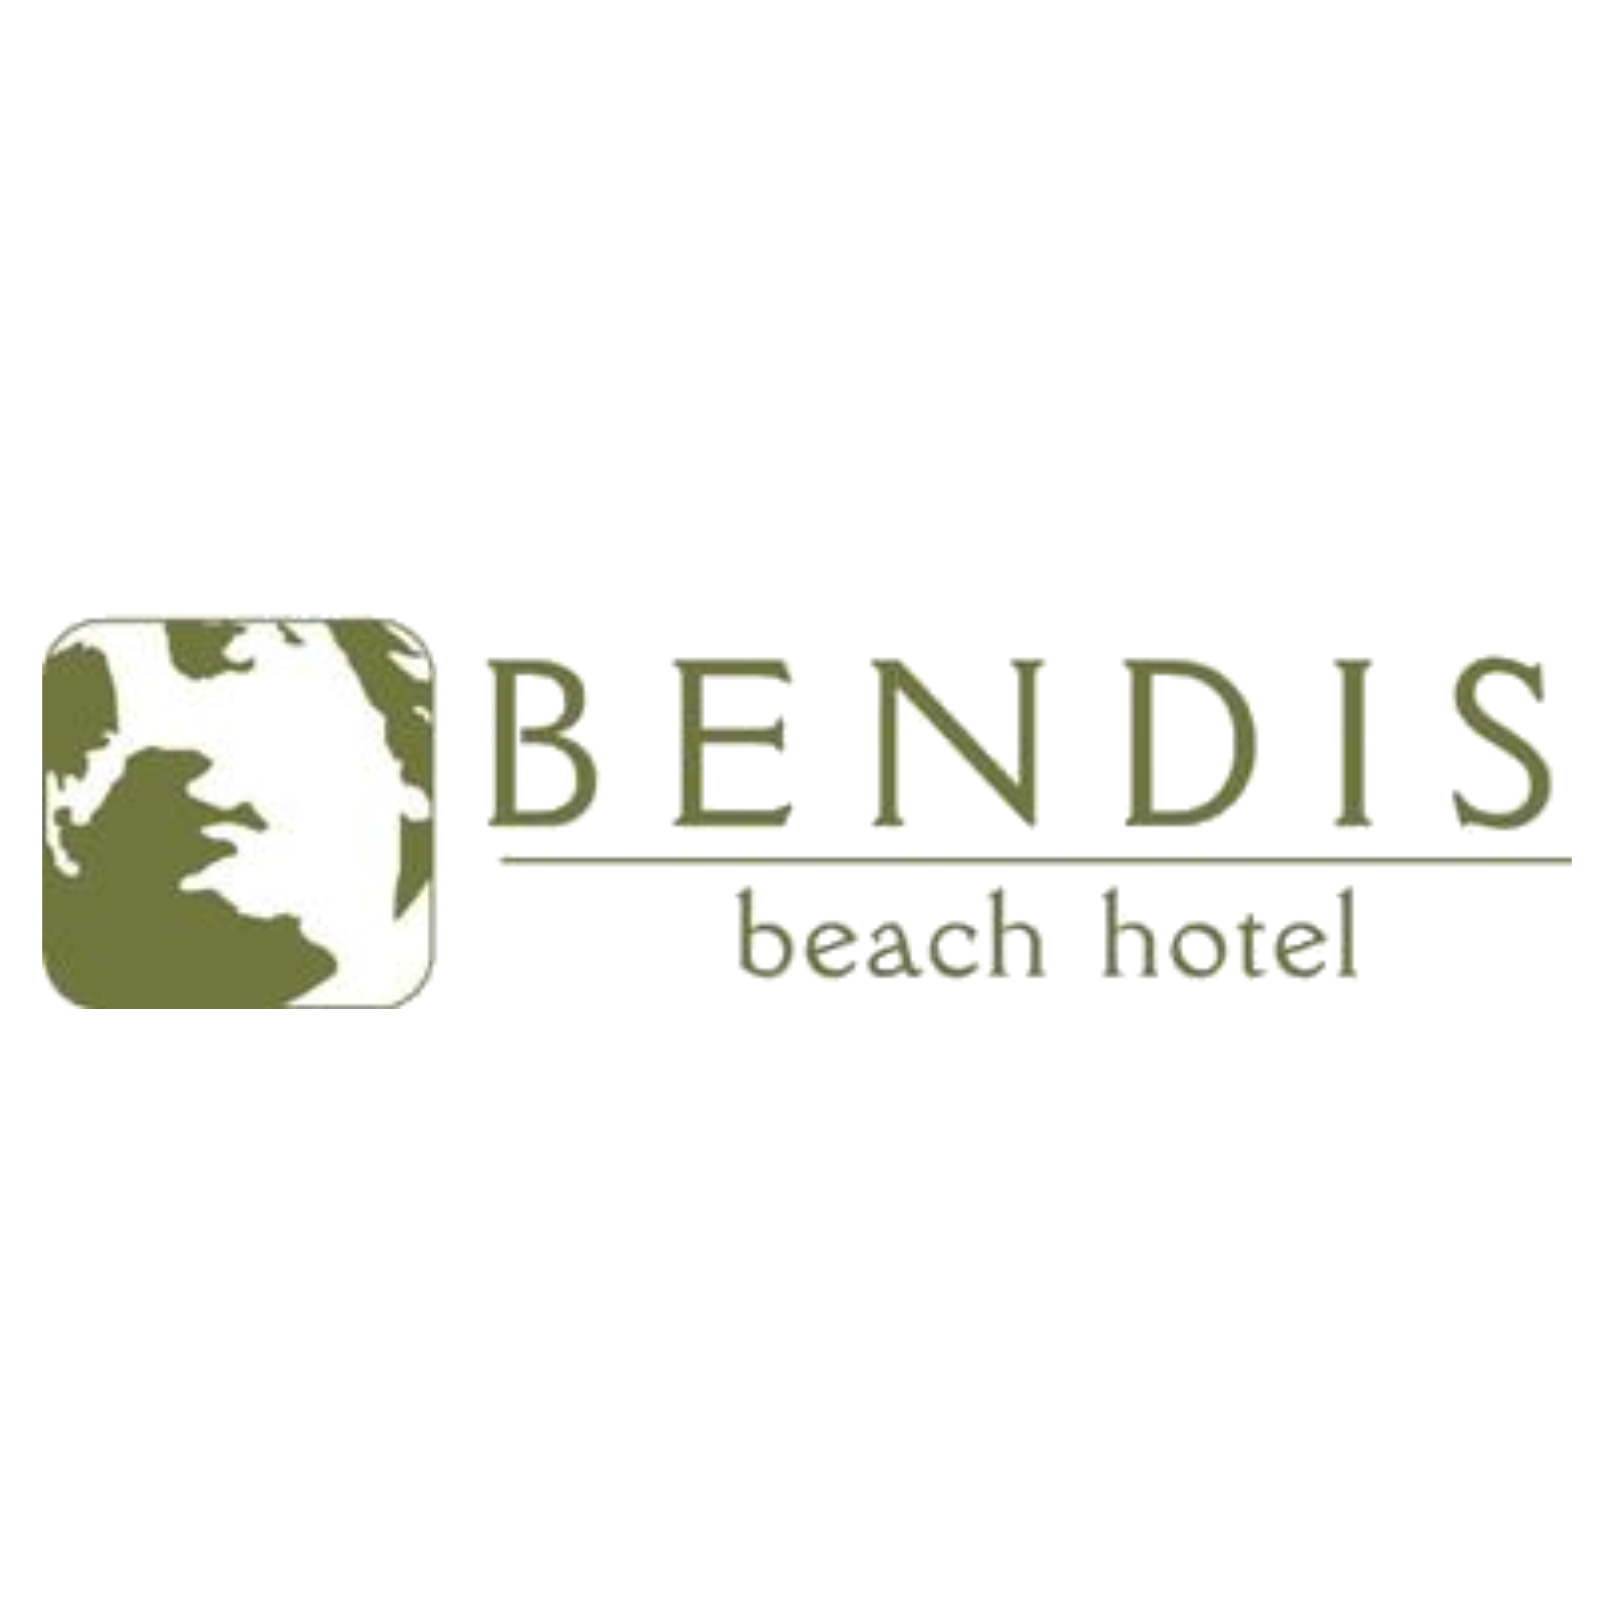 BENDIS BEACH RESORT